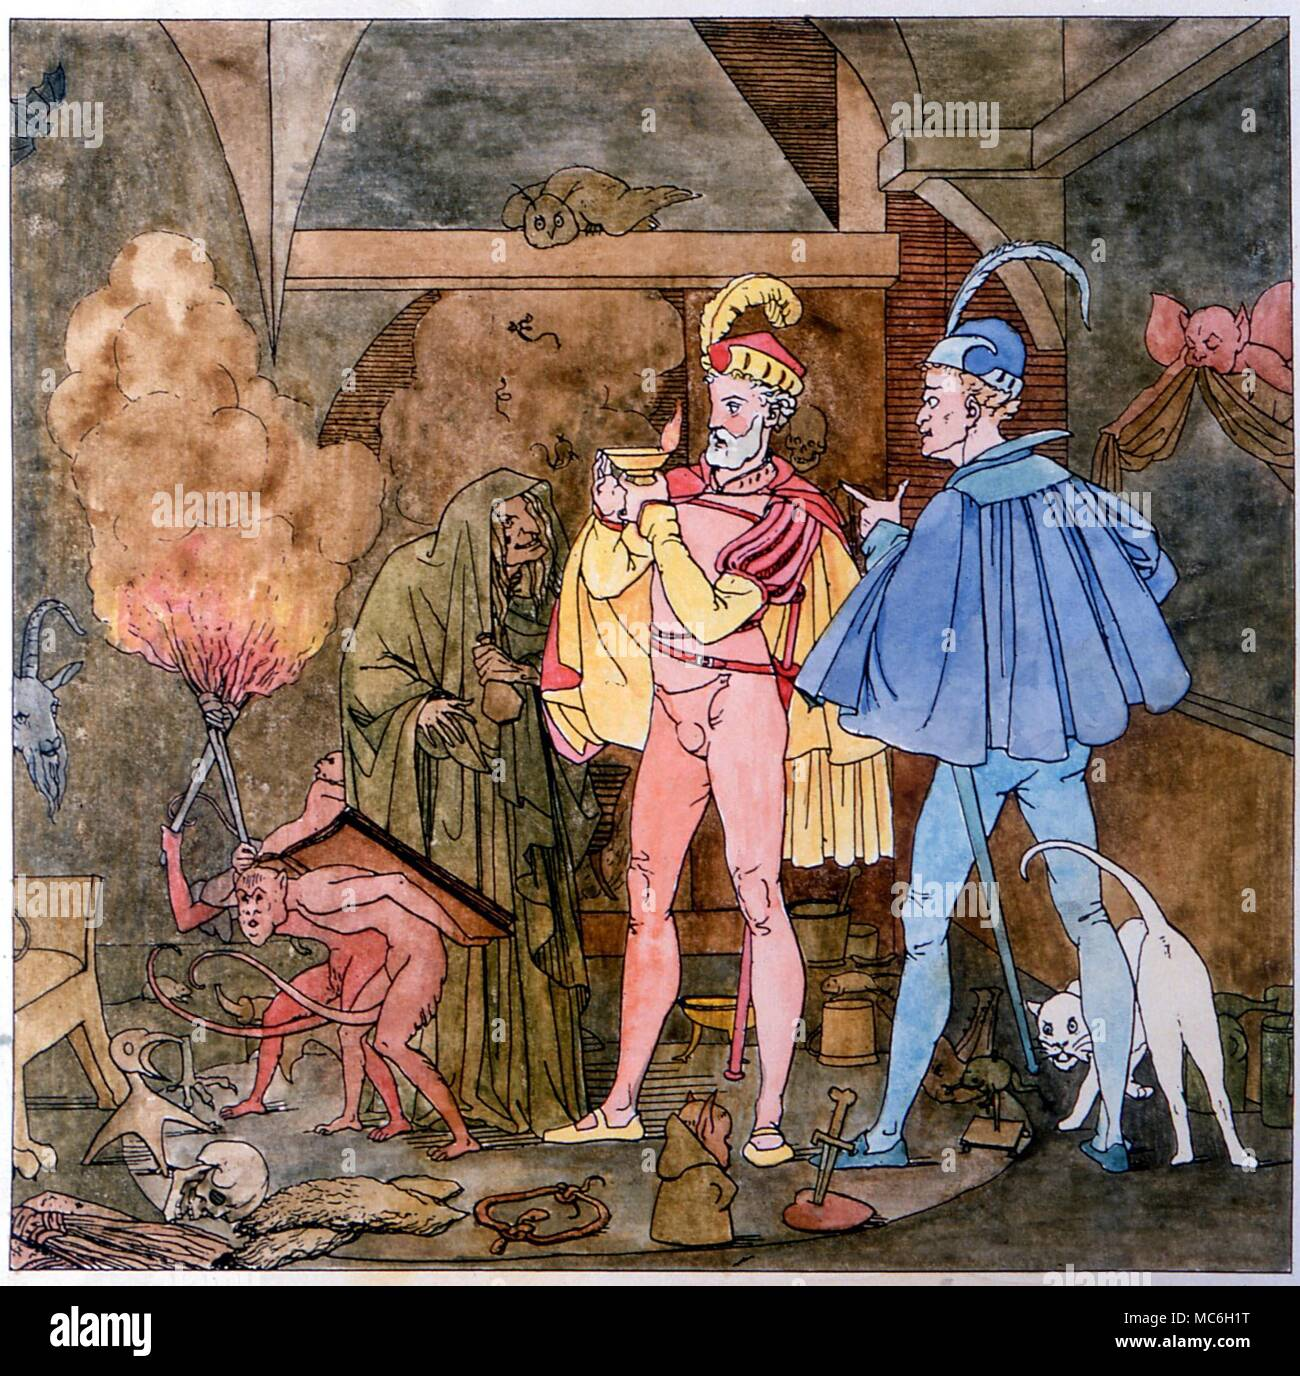 MAGICIANS - Faust and Mephistopheles (of Goethe's play) in the witches hut, surrounded by demons, monsters and magical images.  Faust drinks the witch's.  From M Retzsch, Umrisse zu Goethe's Faust - Stock Image